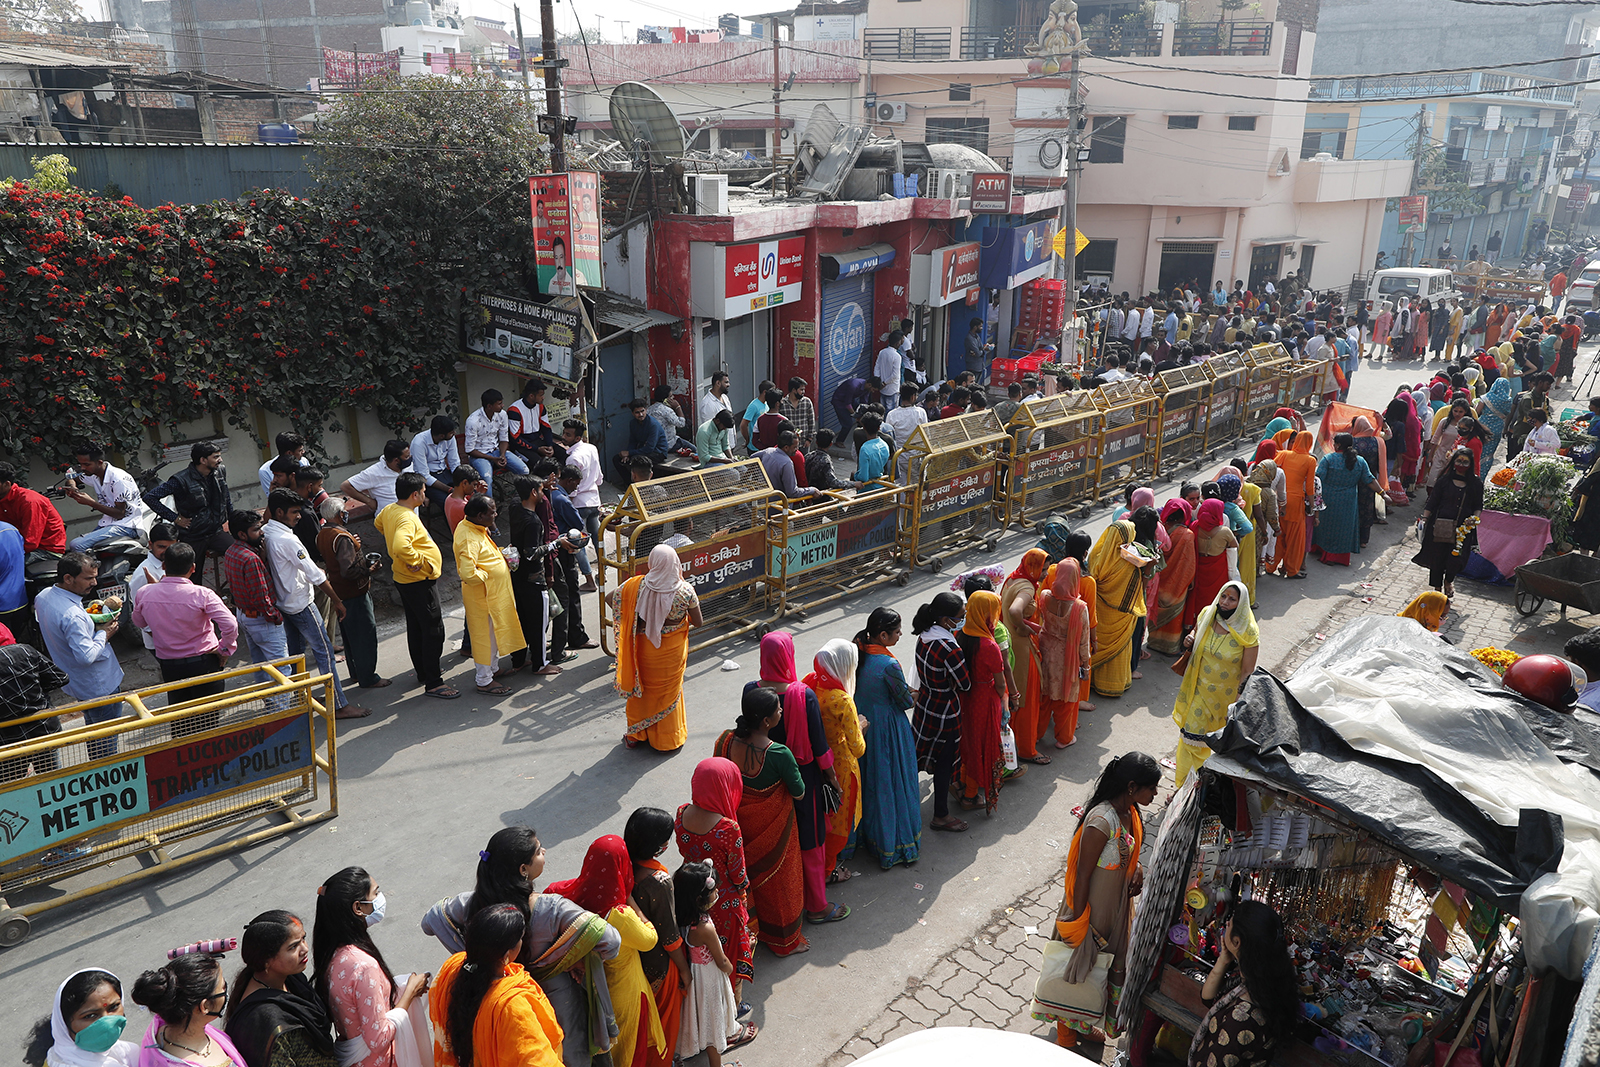 Hindu devotees wait in a line to enter a temple to offer prayers during Shivratri, or Shiva's night festival, in Lucknow, India, Thursday, March 11, 2021. Shivaratri, or the night of Shiva, is dedicated to the worship of Lord Shiva, the Hindu god of death and destruction. (AP Photo/Rajesh Kumar Singh)